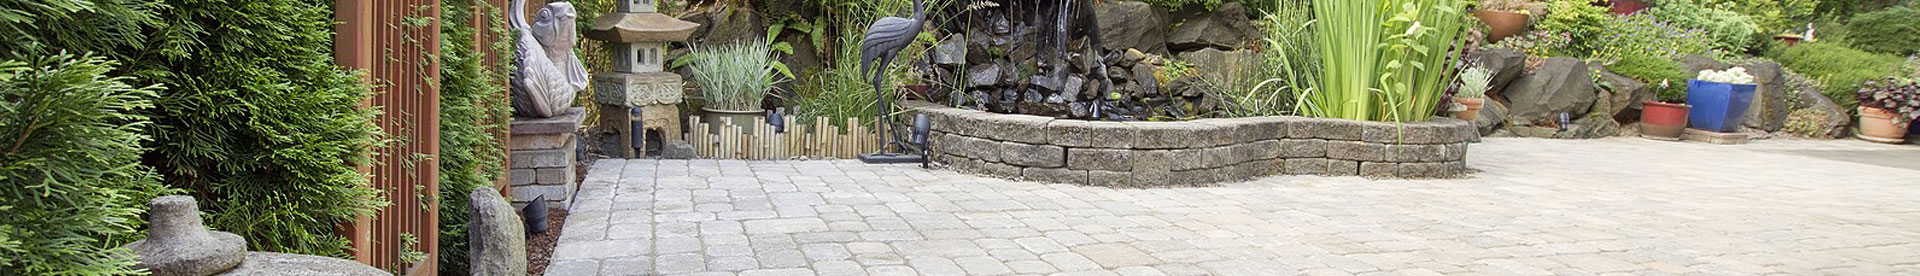 Patio-Services-Waterford-and-Tramore_1920